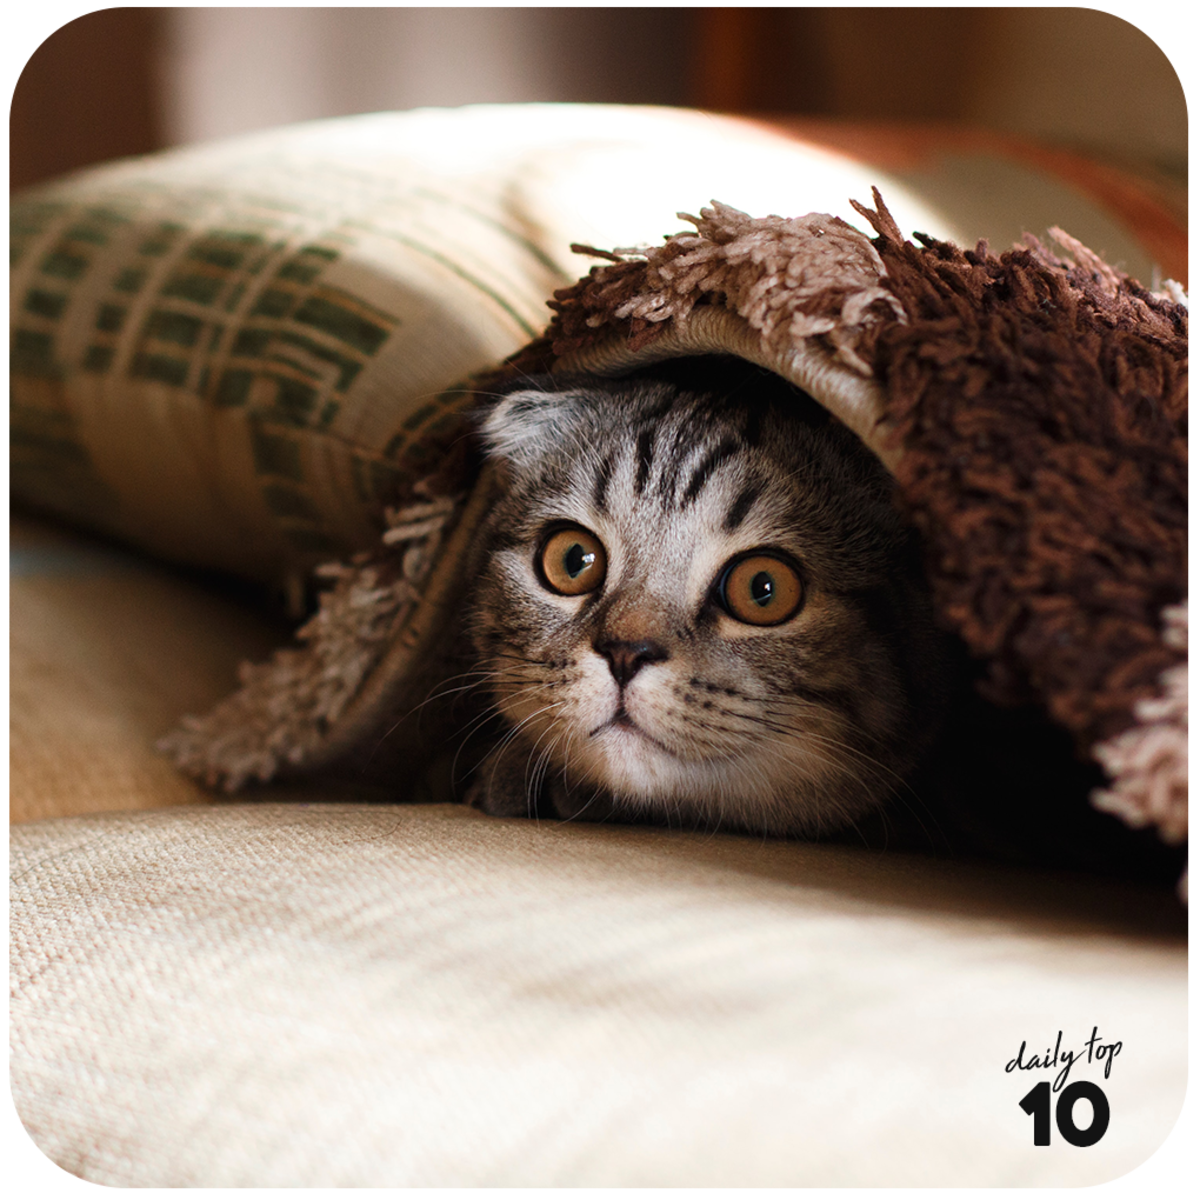 top-10-cutest-cat-photos-of-all-time